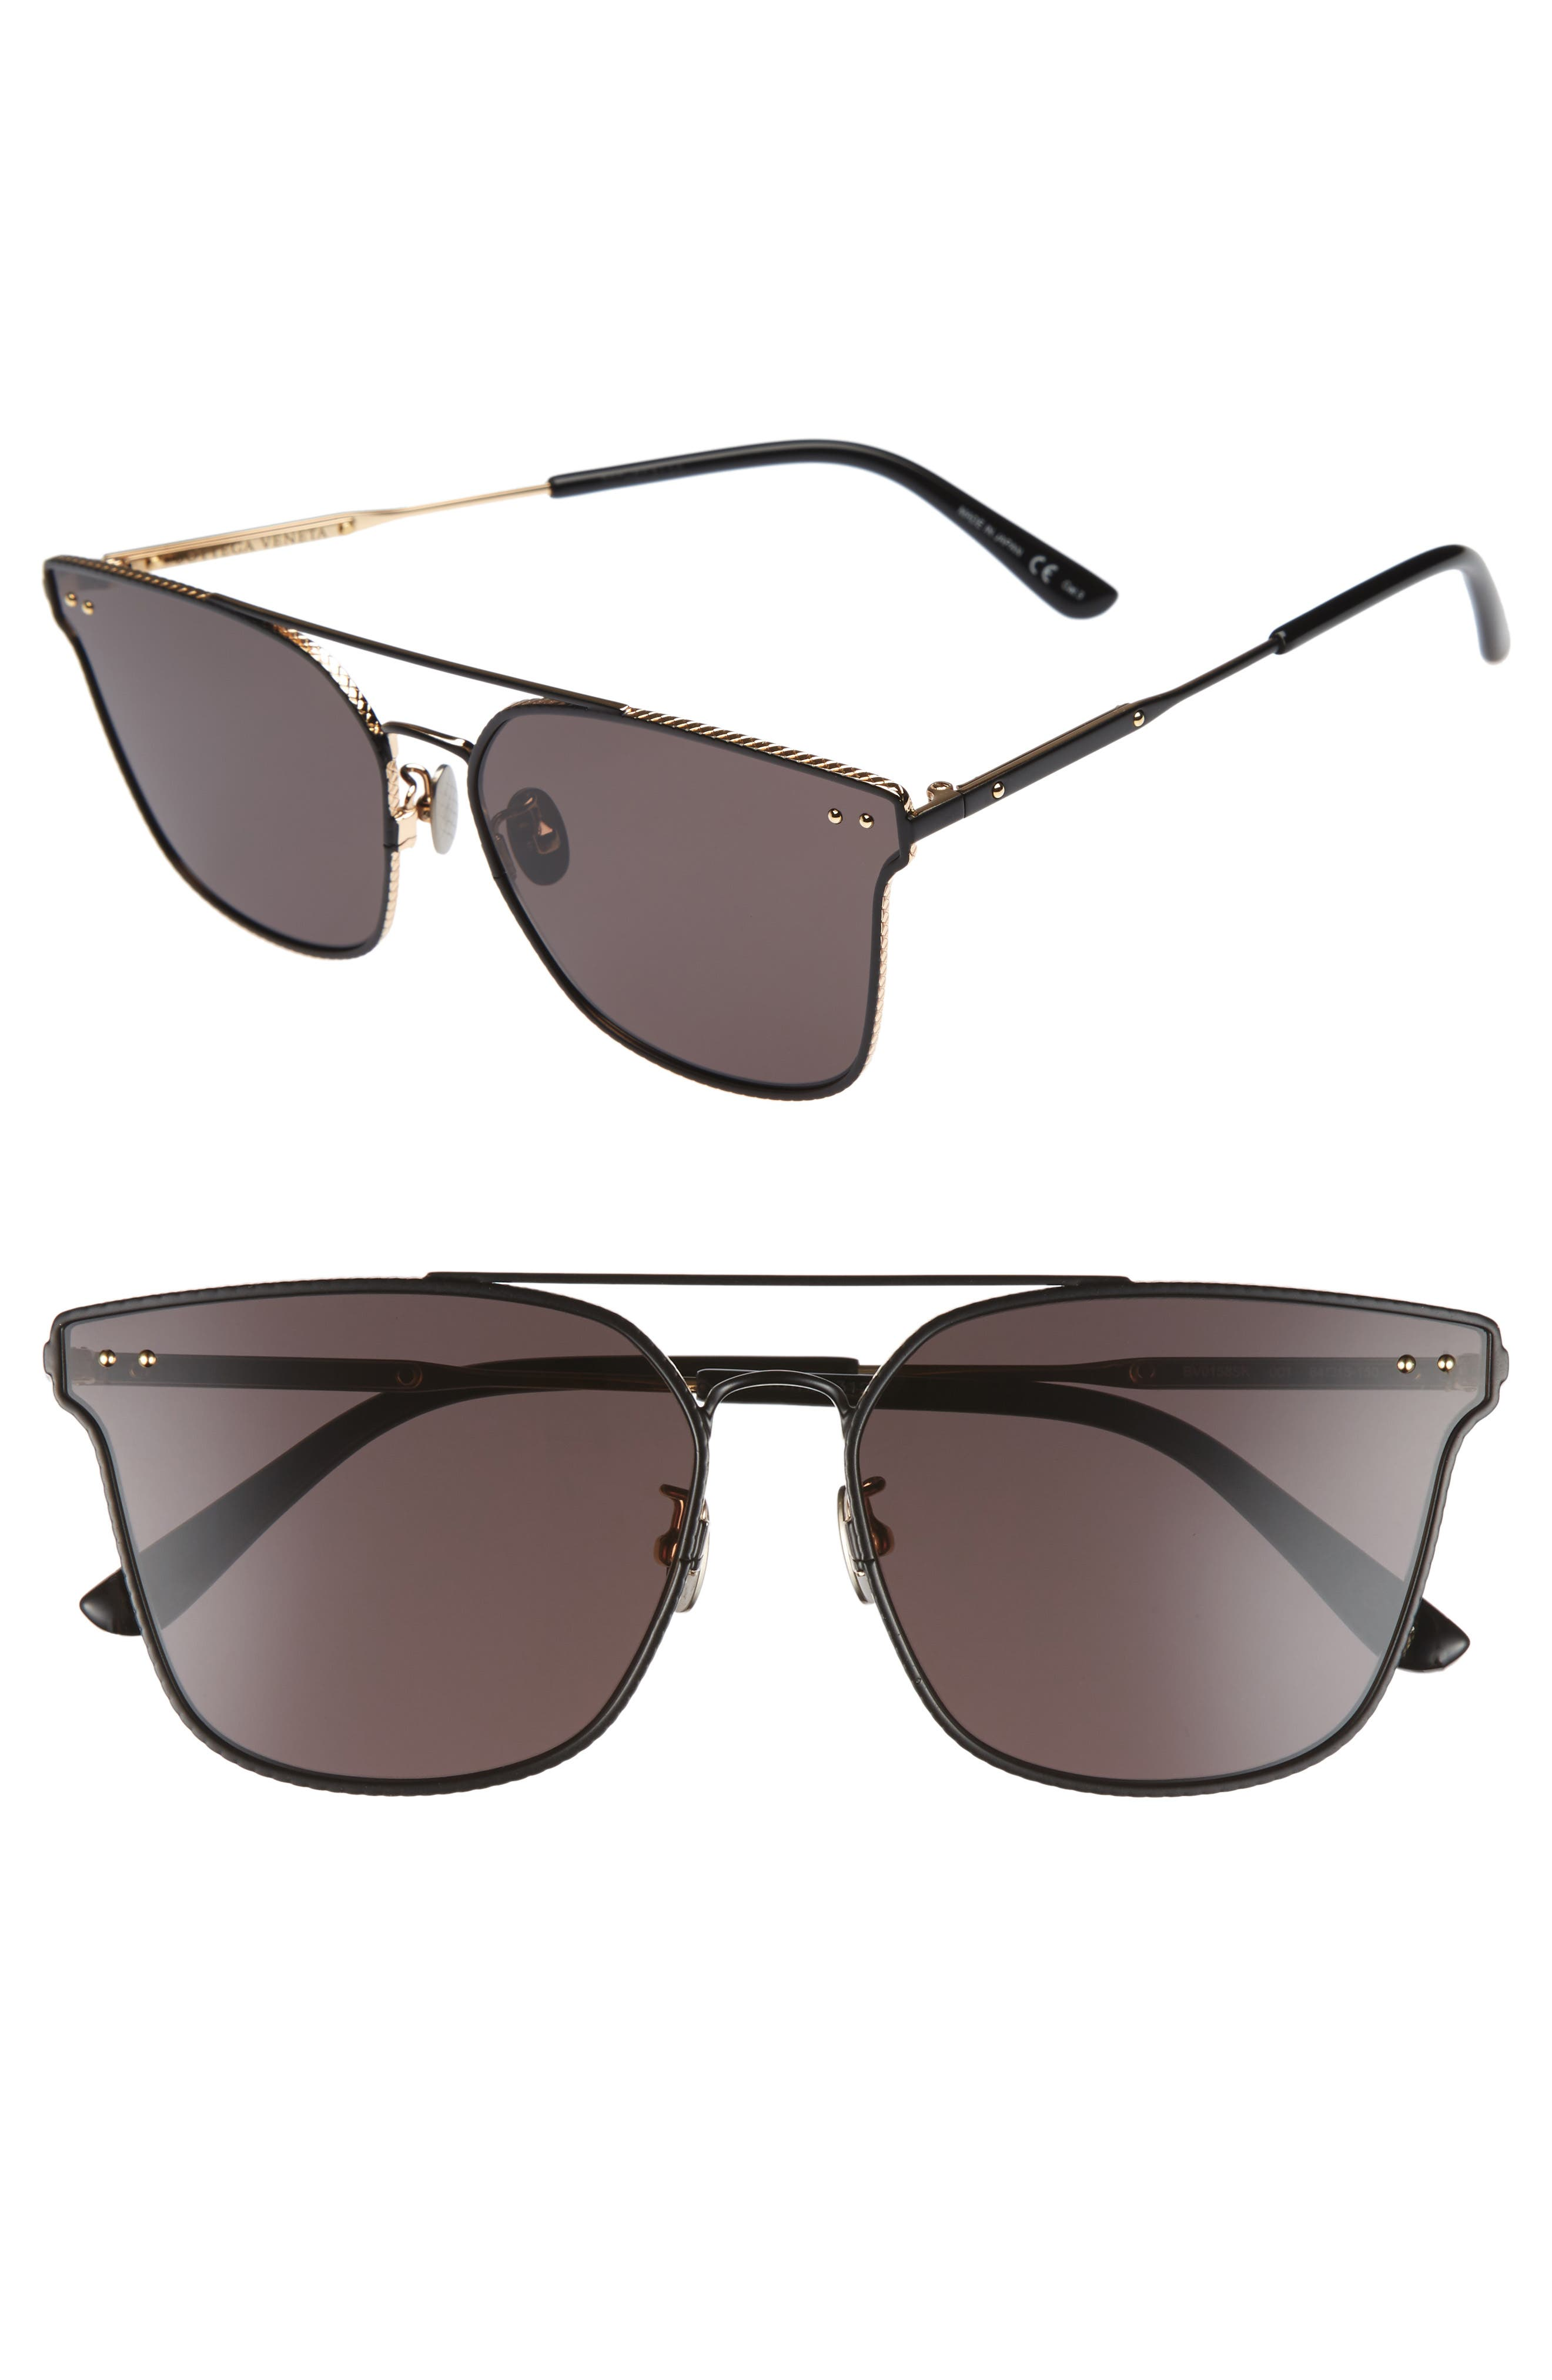 64mm Sunglasses,                             Main thumbnail 1, color,                             BLACK